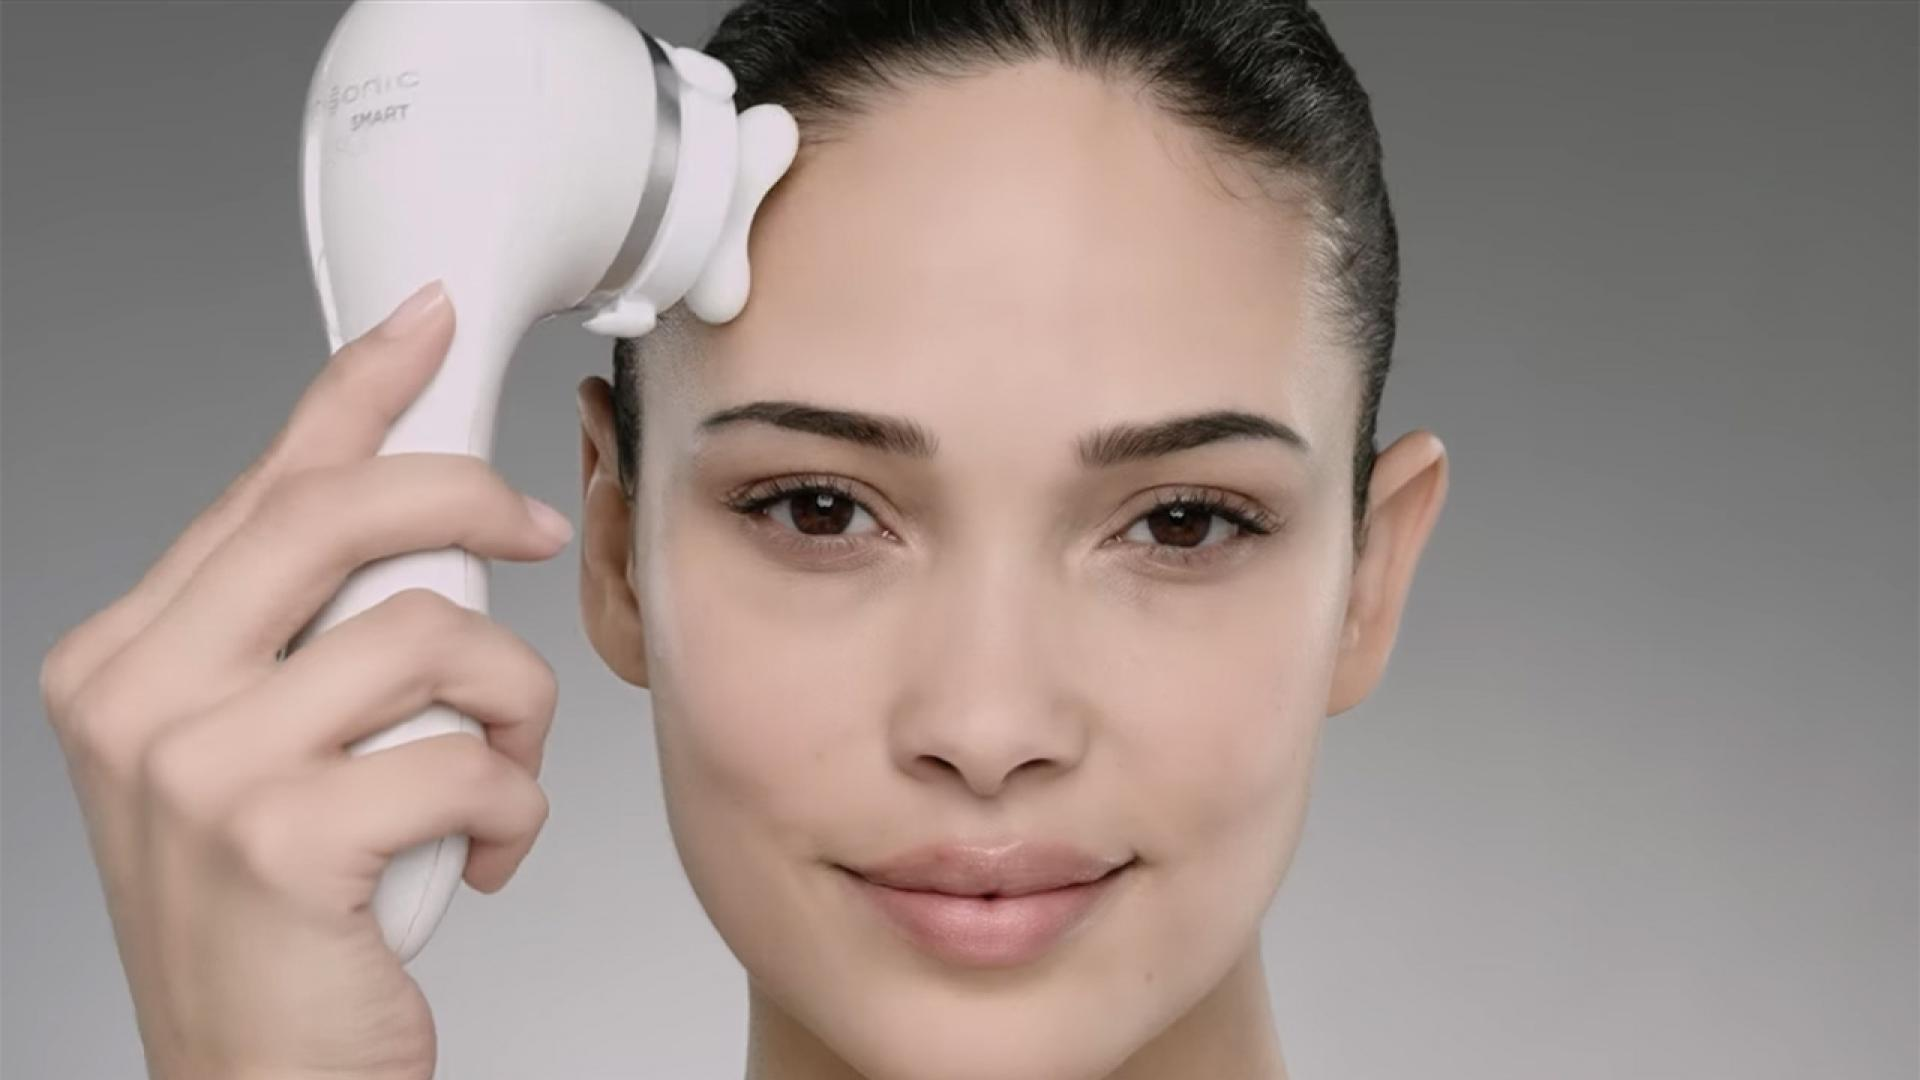 Clarisonic Smart Profile Uplift - How To Use